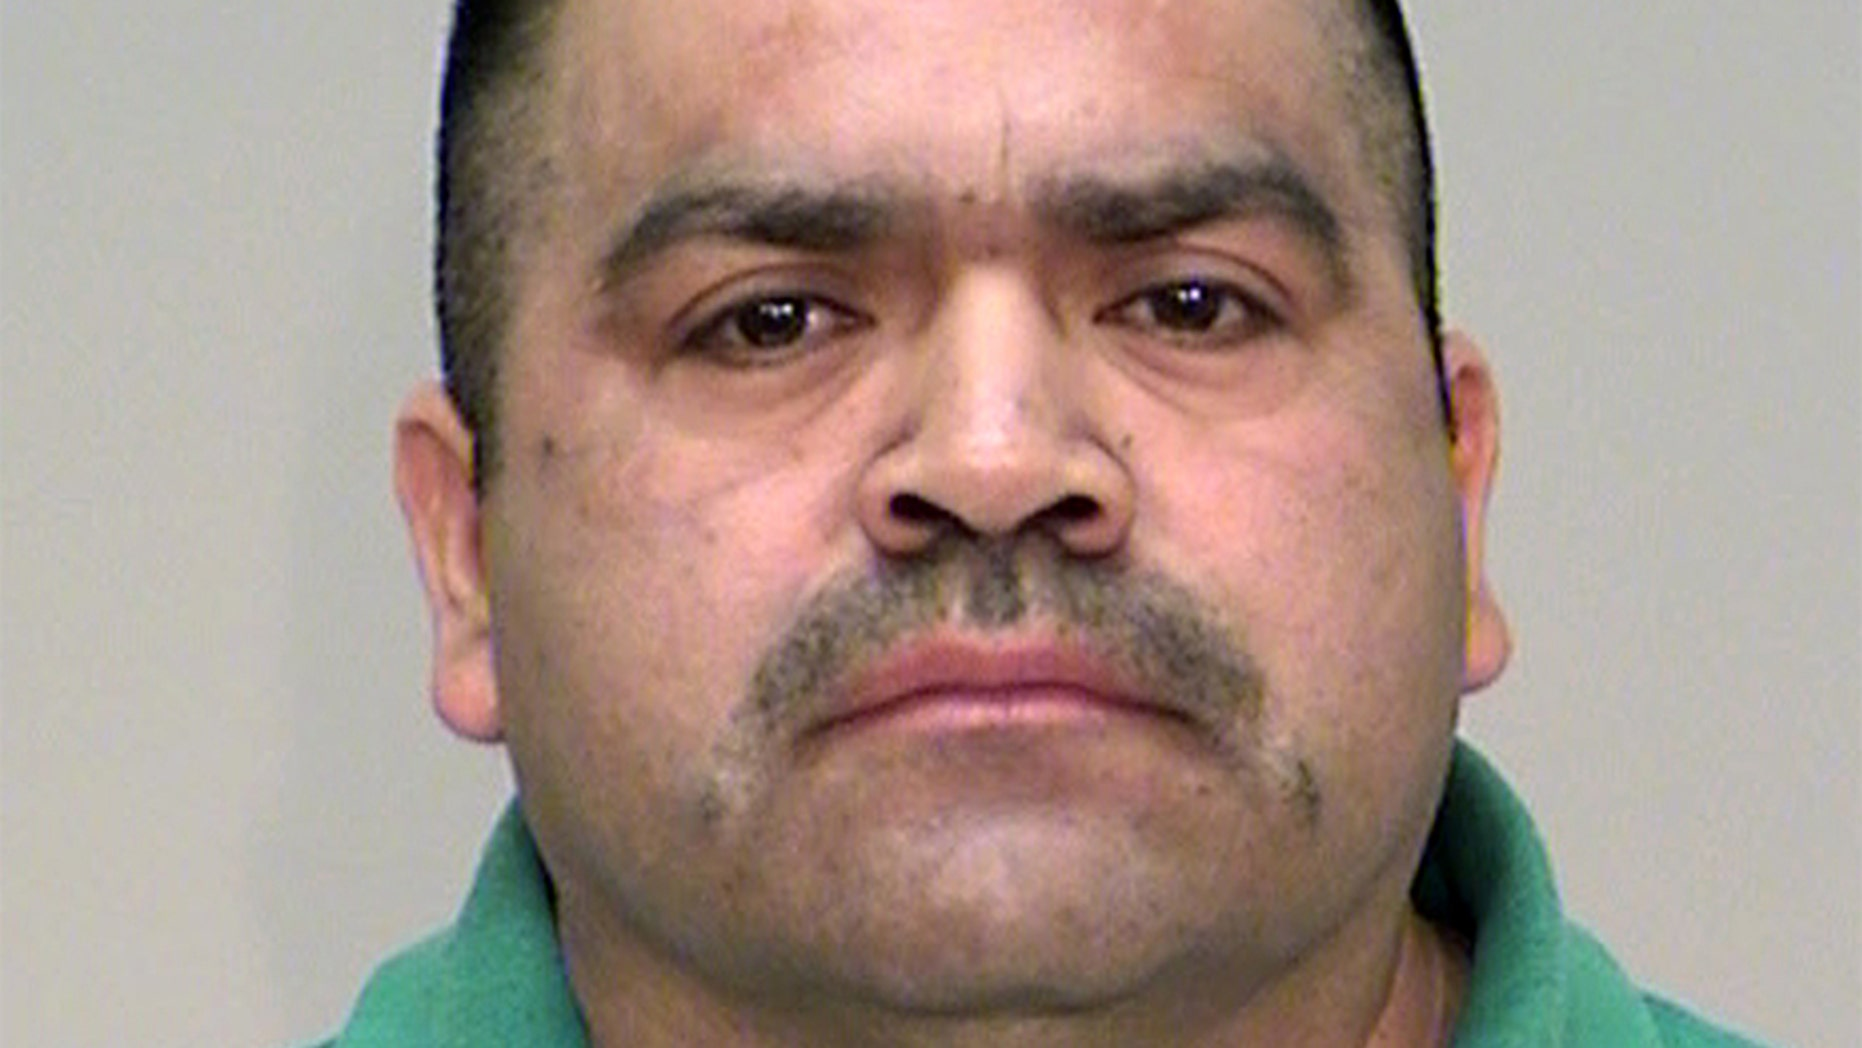 Conrrado Cruz Perez, a Minnesota restaurant worker, is accused of urinating in a co-worker's water bottle.